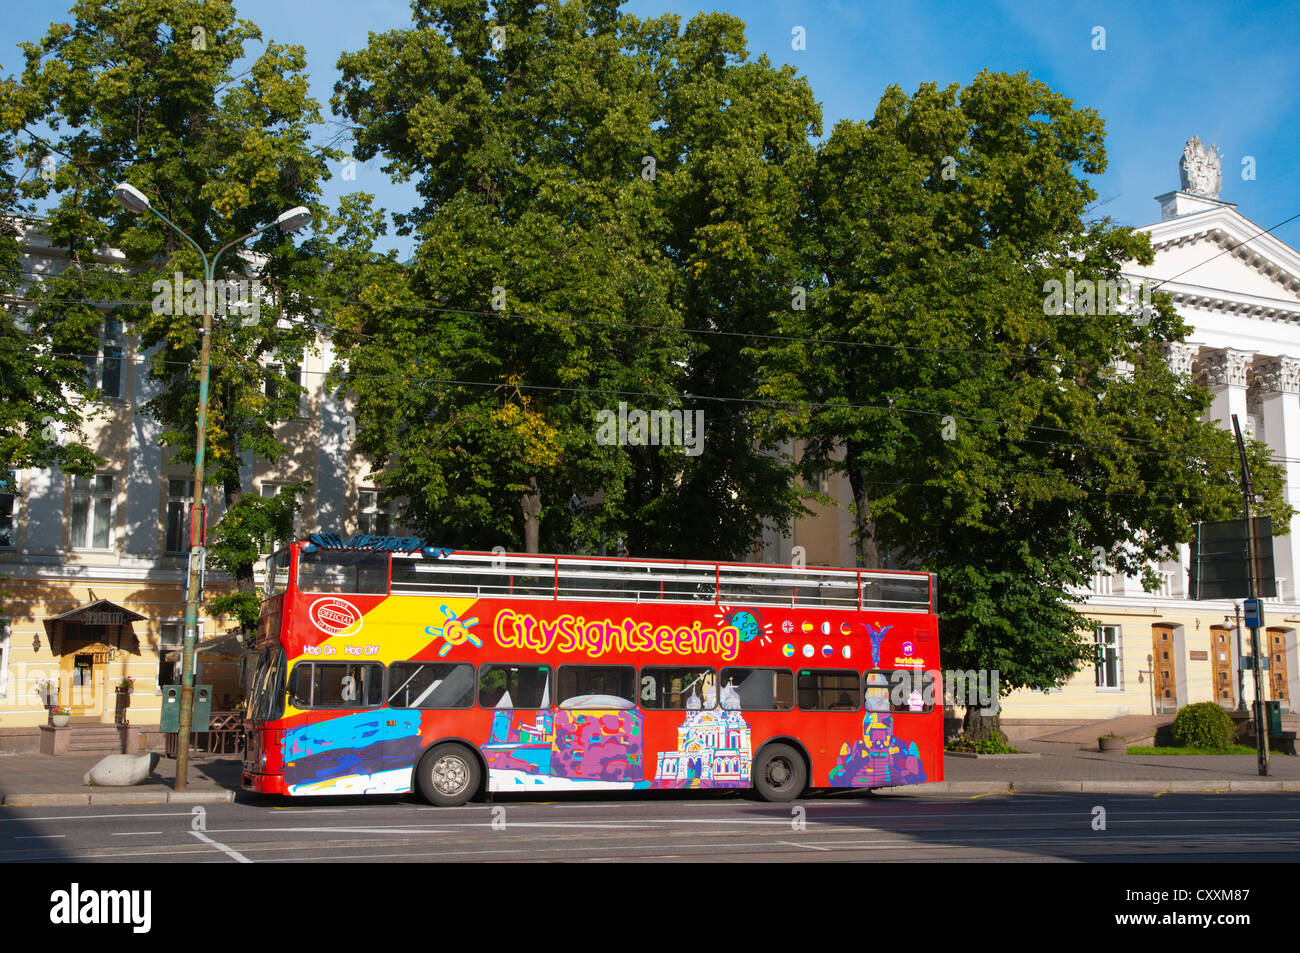 Double decker city sightseeing tour bus at Viru Väljak square Kesklinn central Tallinn Estonia Europe - Stock Image